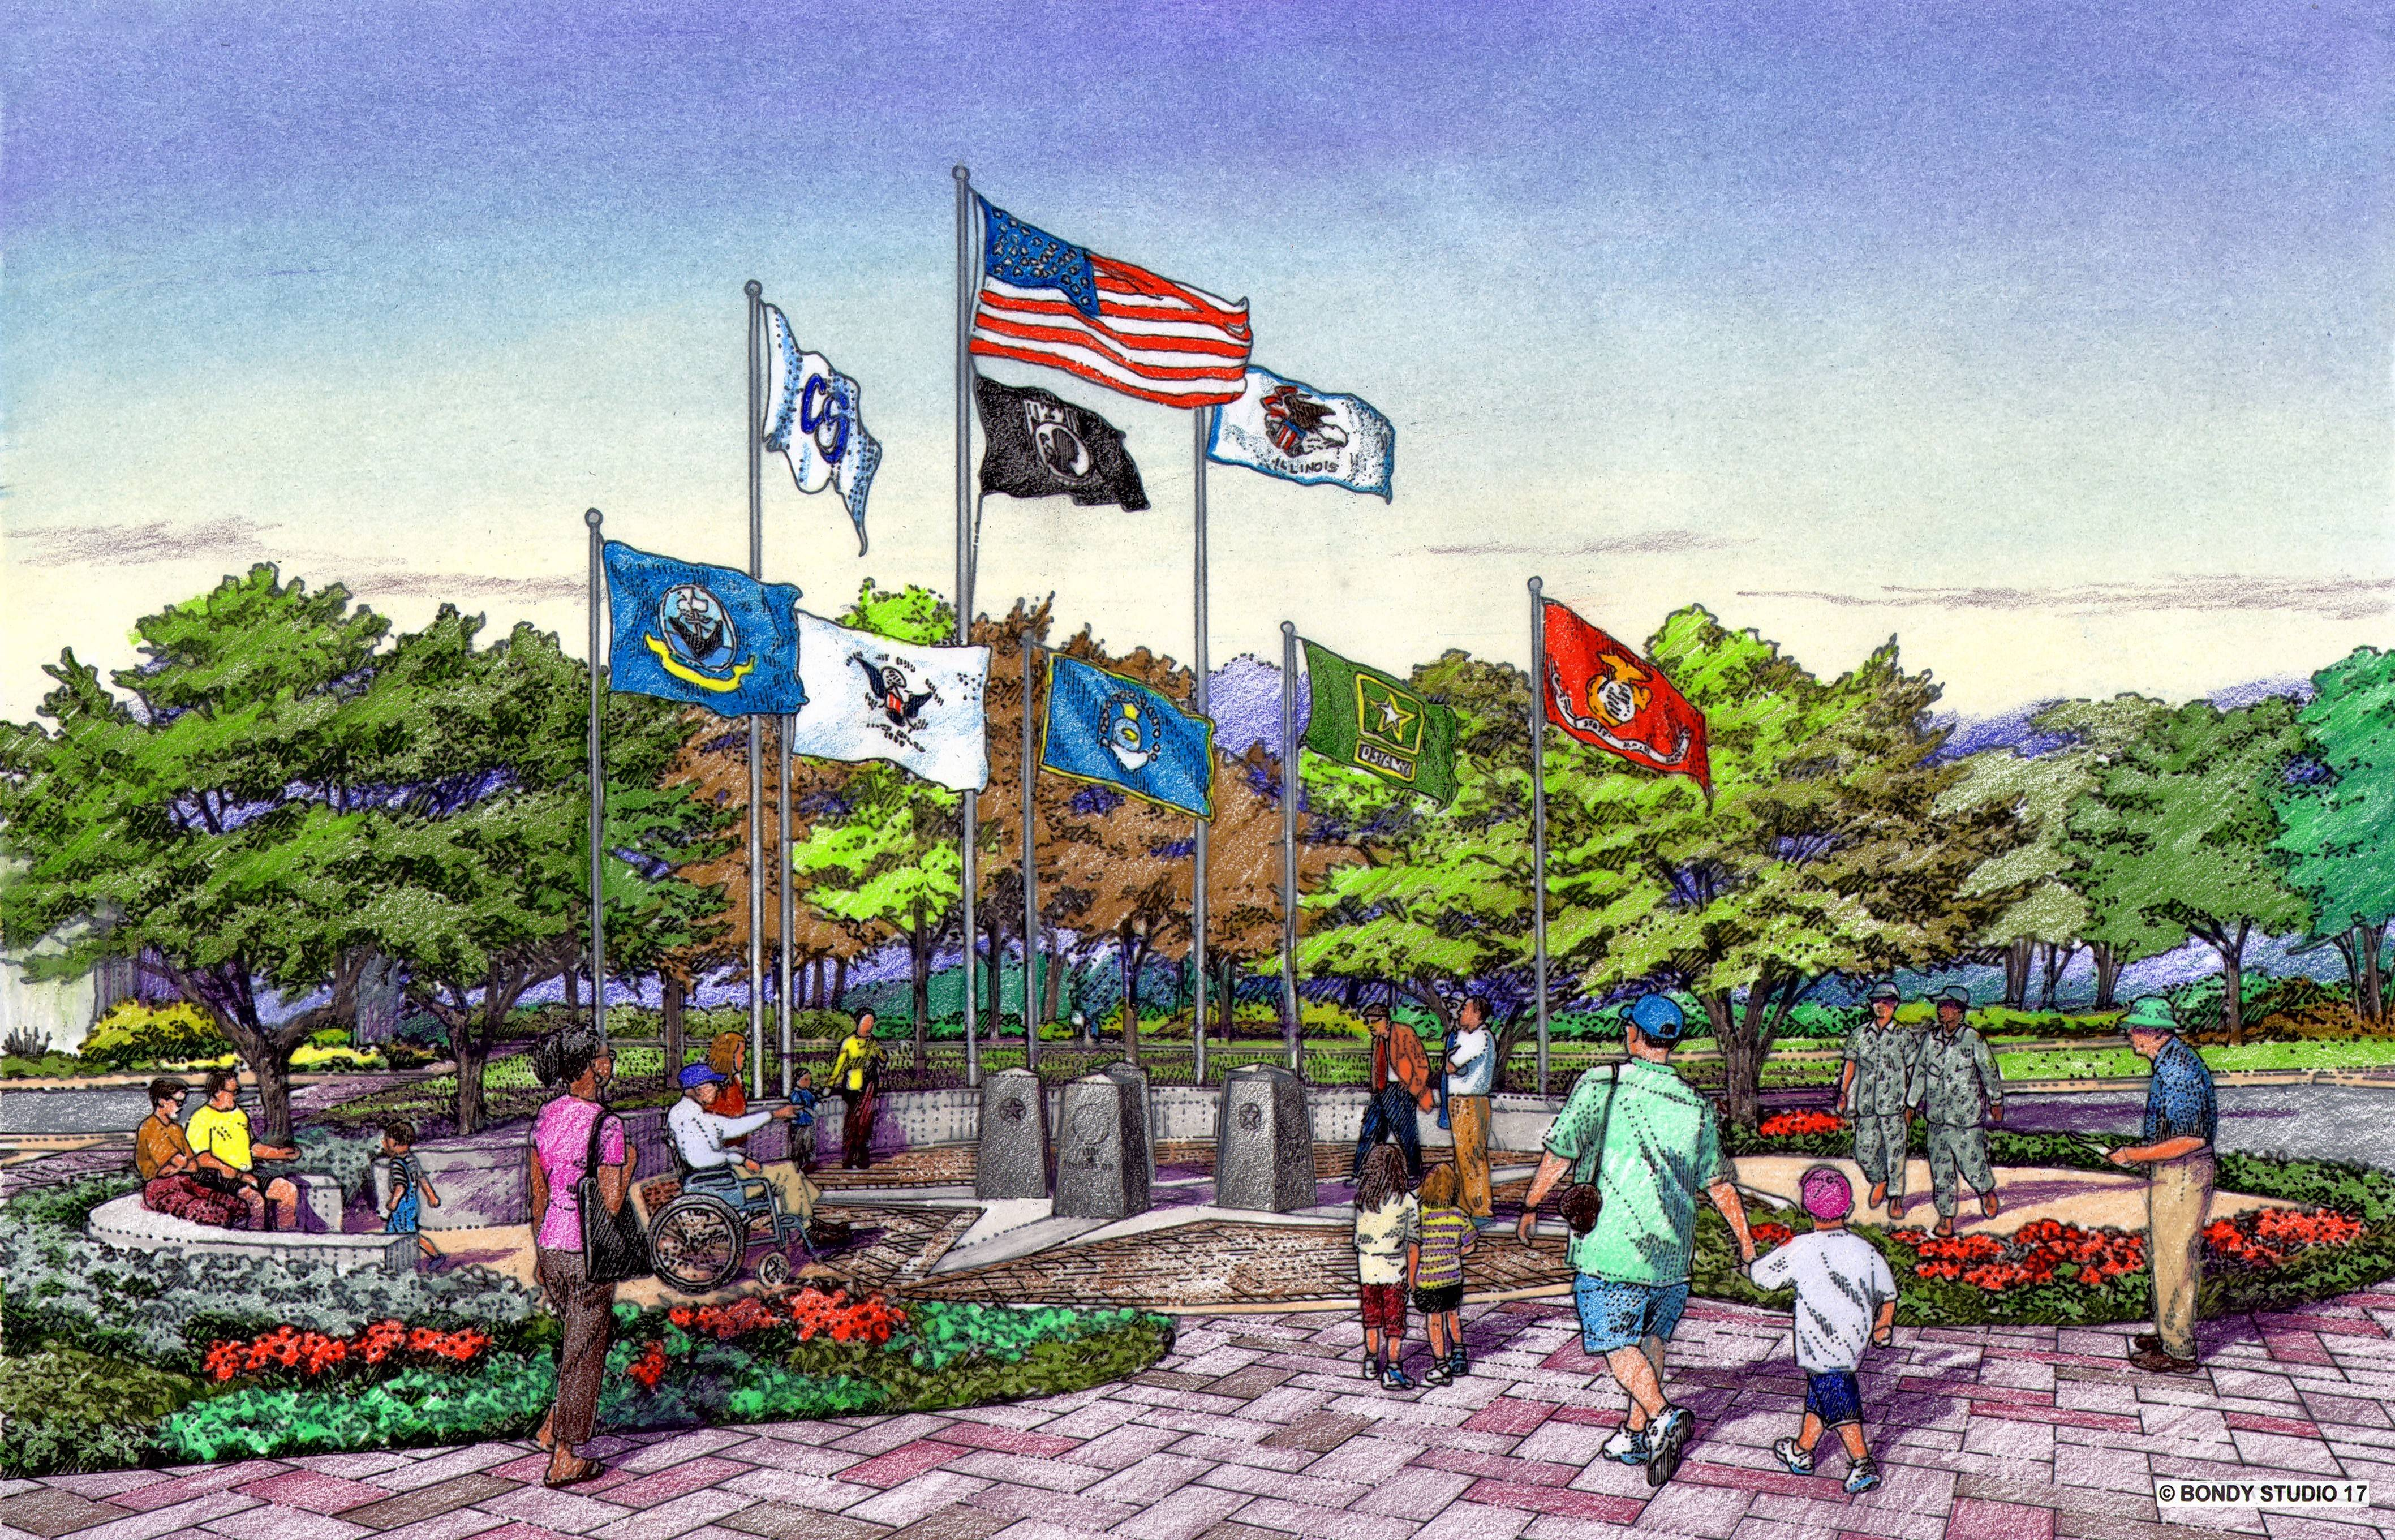 A volunteer task force will break ground on a new Carol Stream veterans memorial at the village-owned Town Center Friday, Sept. 21. The group includes members from the Carol Stream VFW, American Legion, village, park district and chamber of commerce.